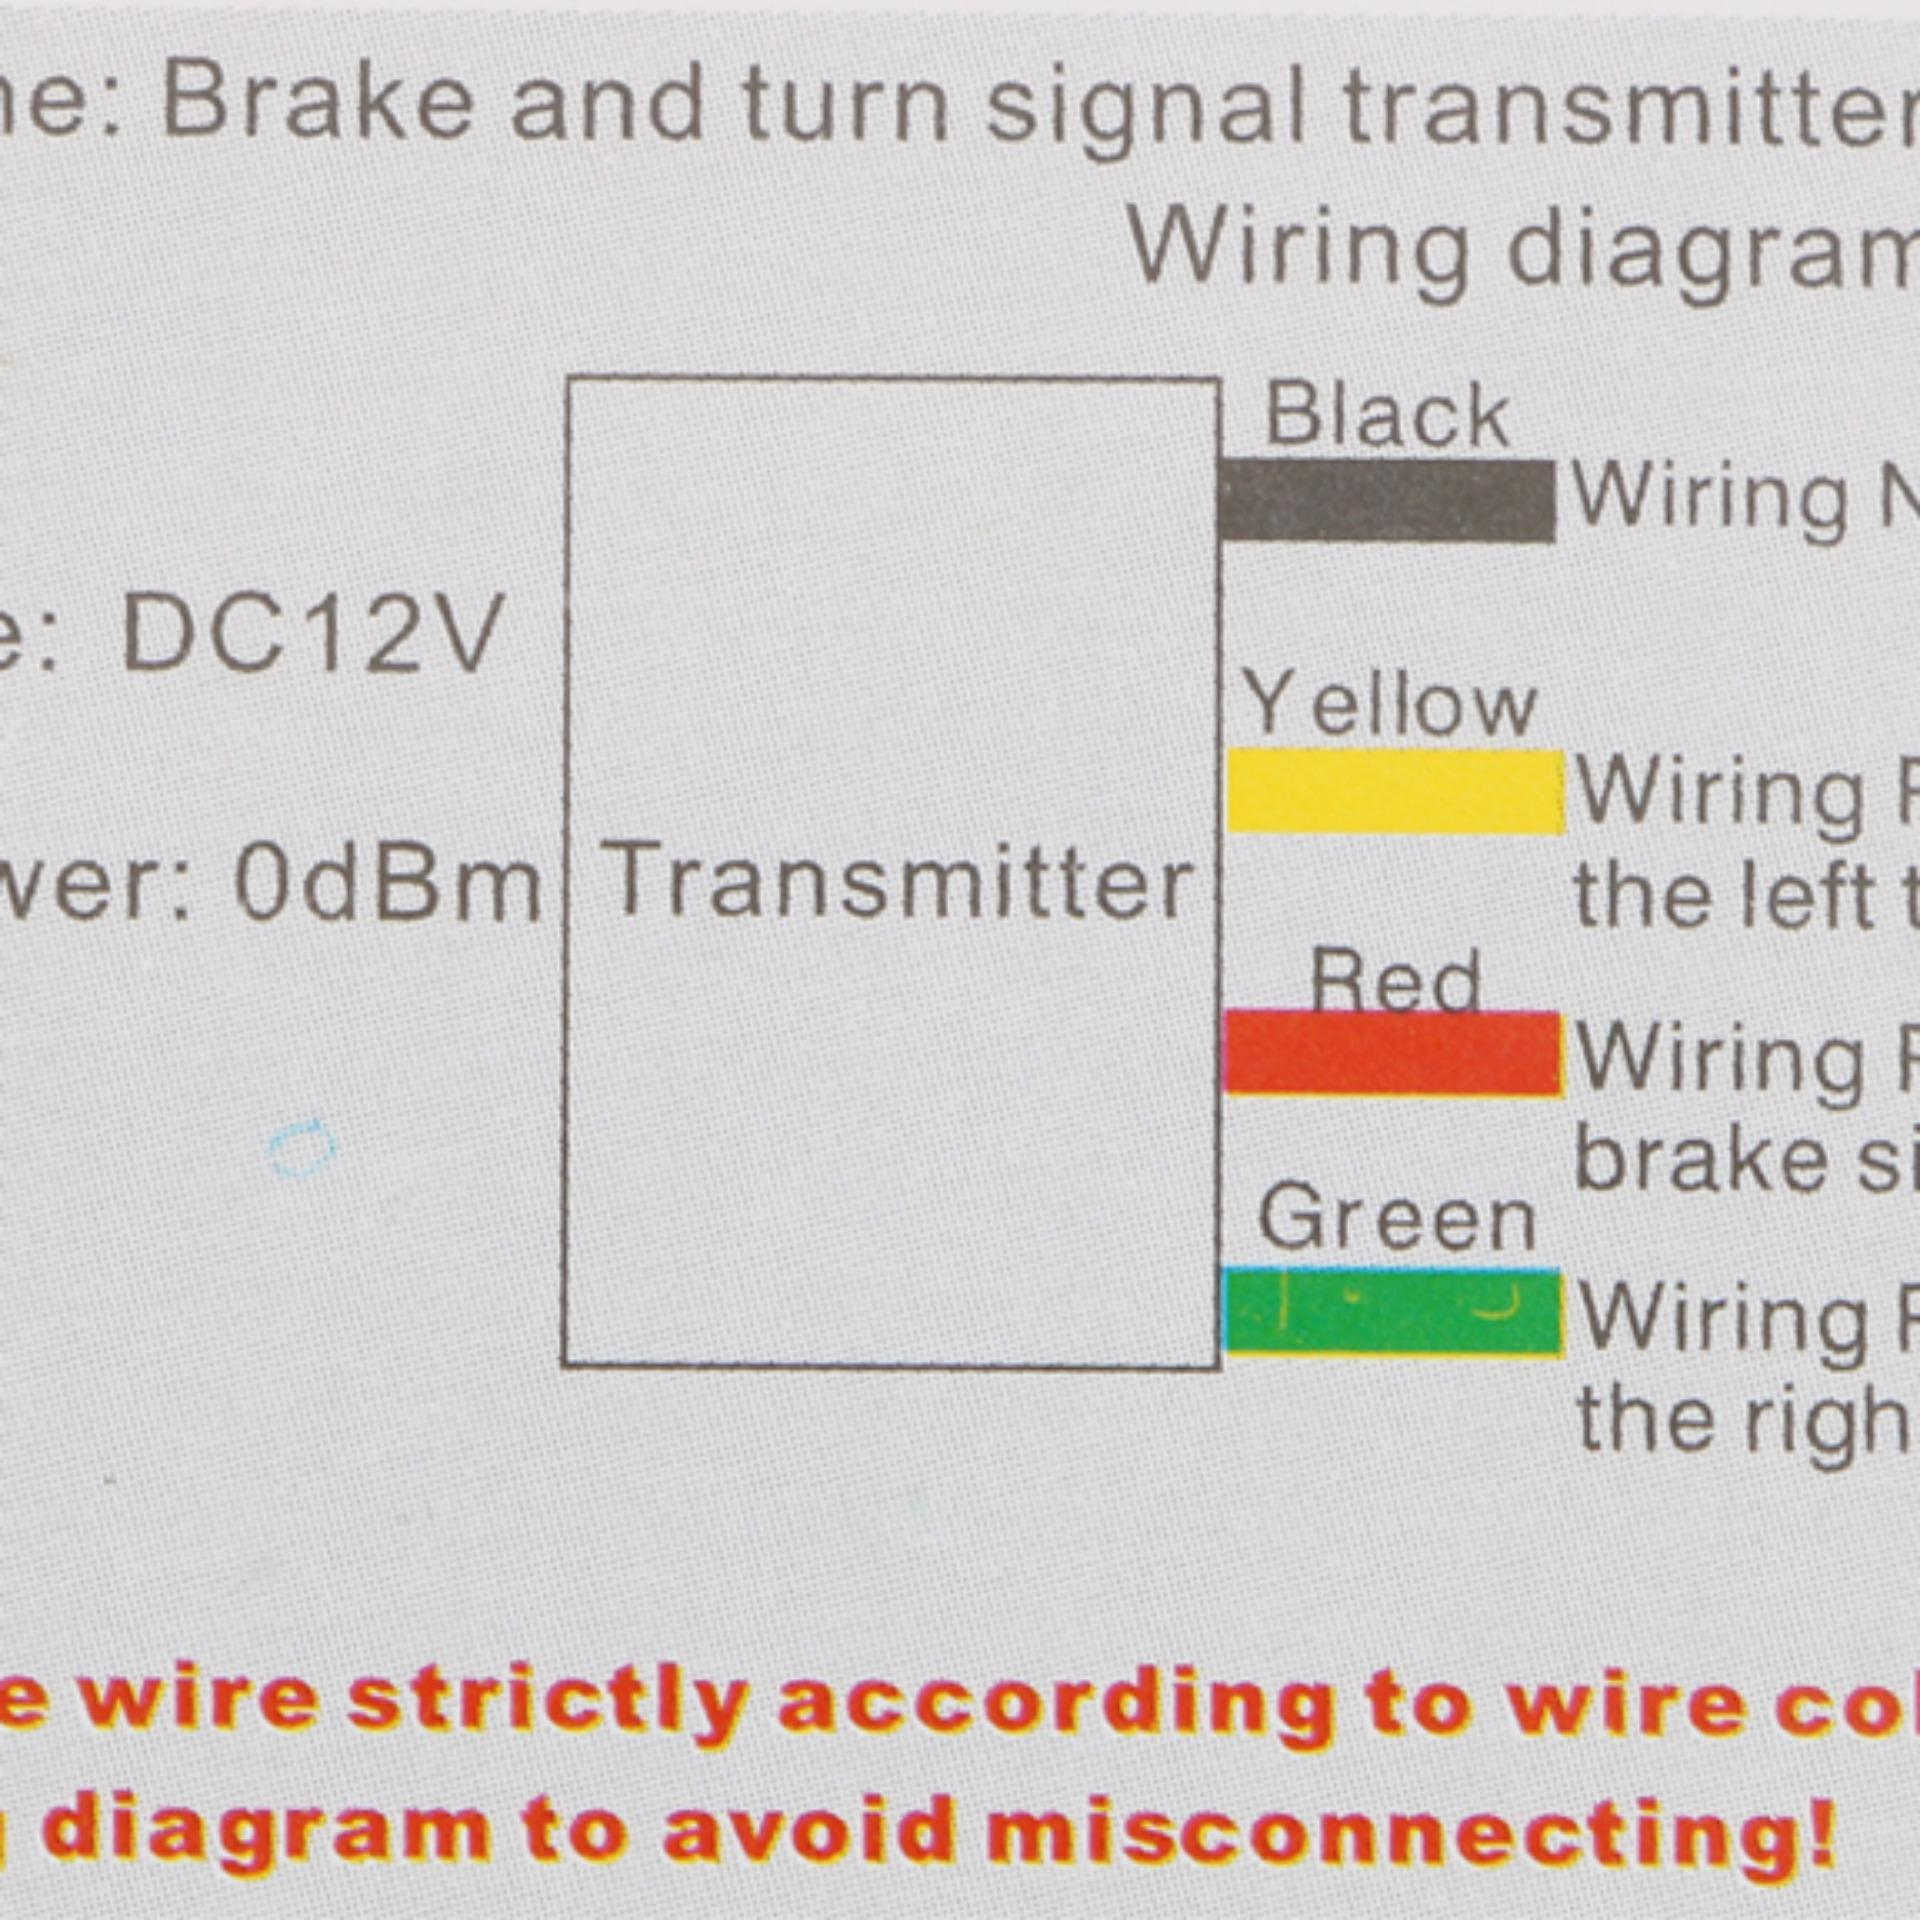 Philippines 8 Led 24g Wireless Motorcycle Accessories Helmet Lamp Blinker Wiring Diagram Brake Andturn Signal Light Intl